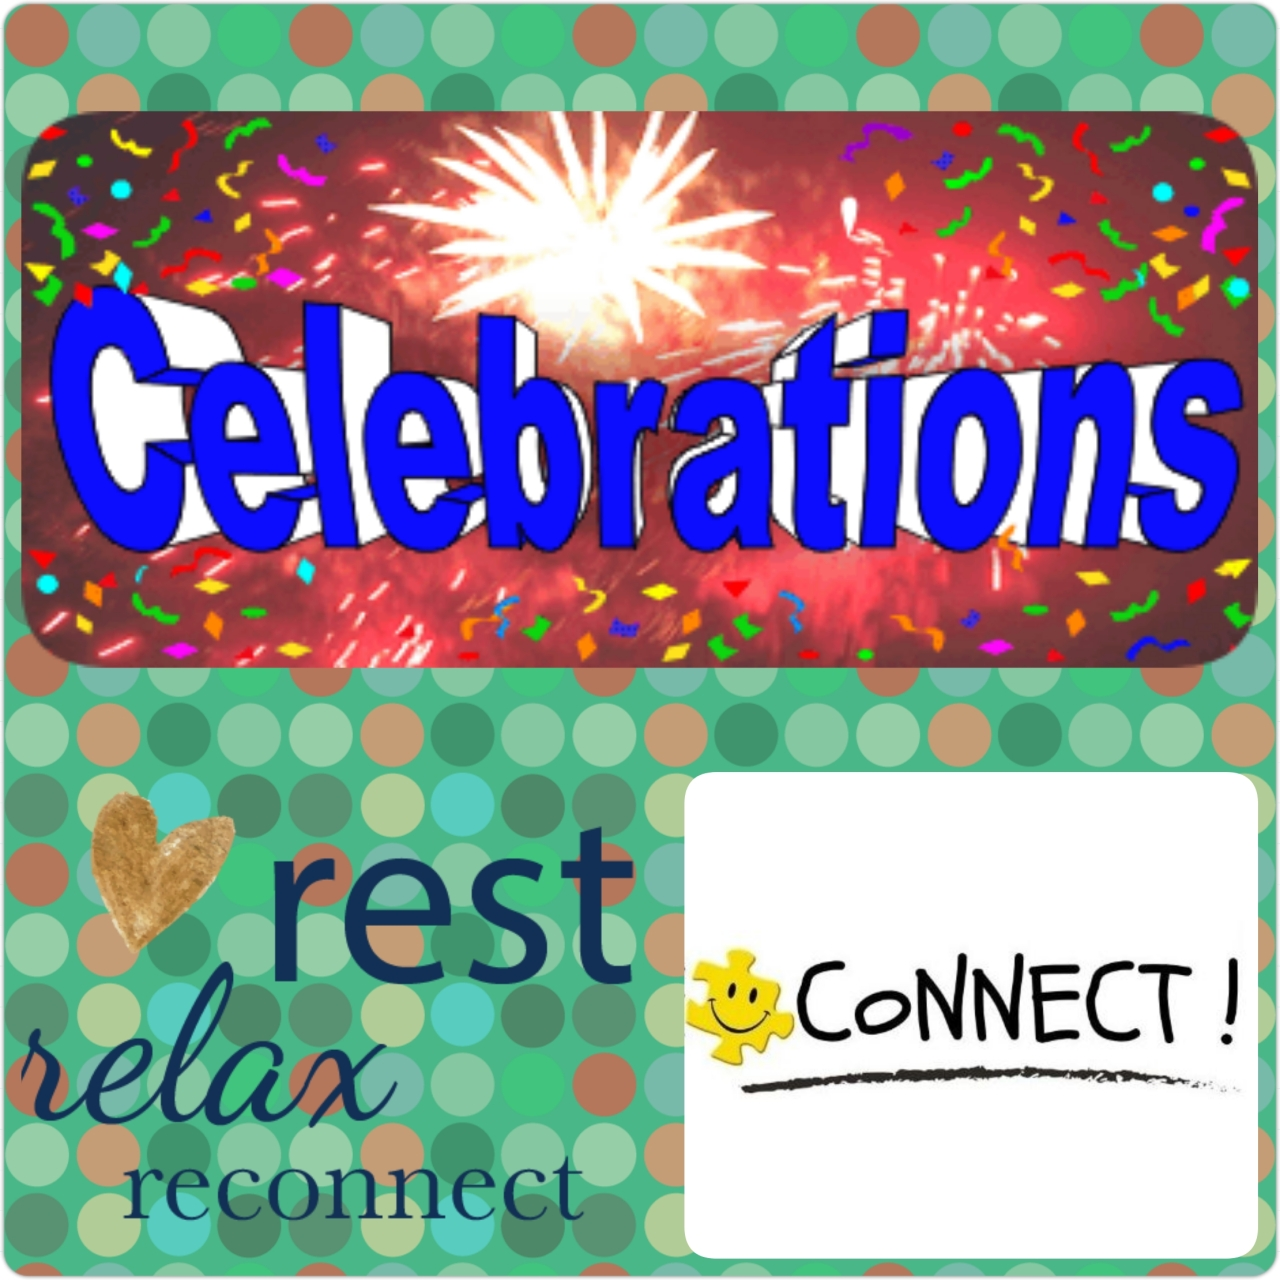 A month of Celebrations – Connecting and Reconnecting